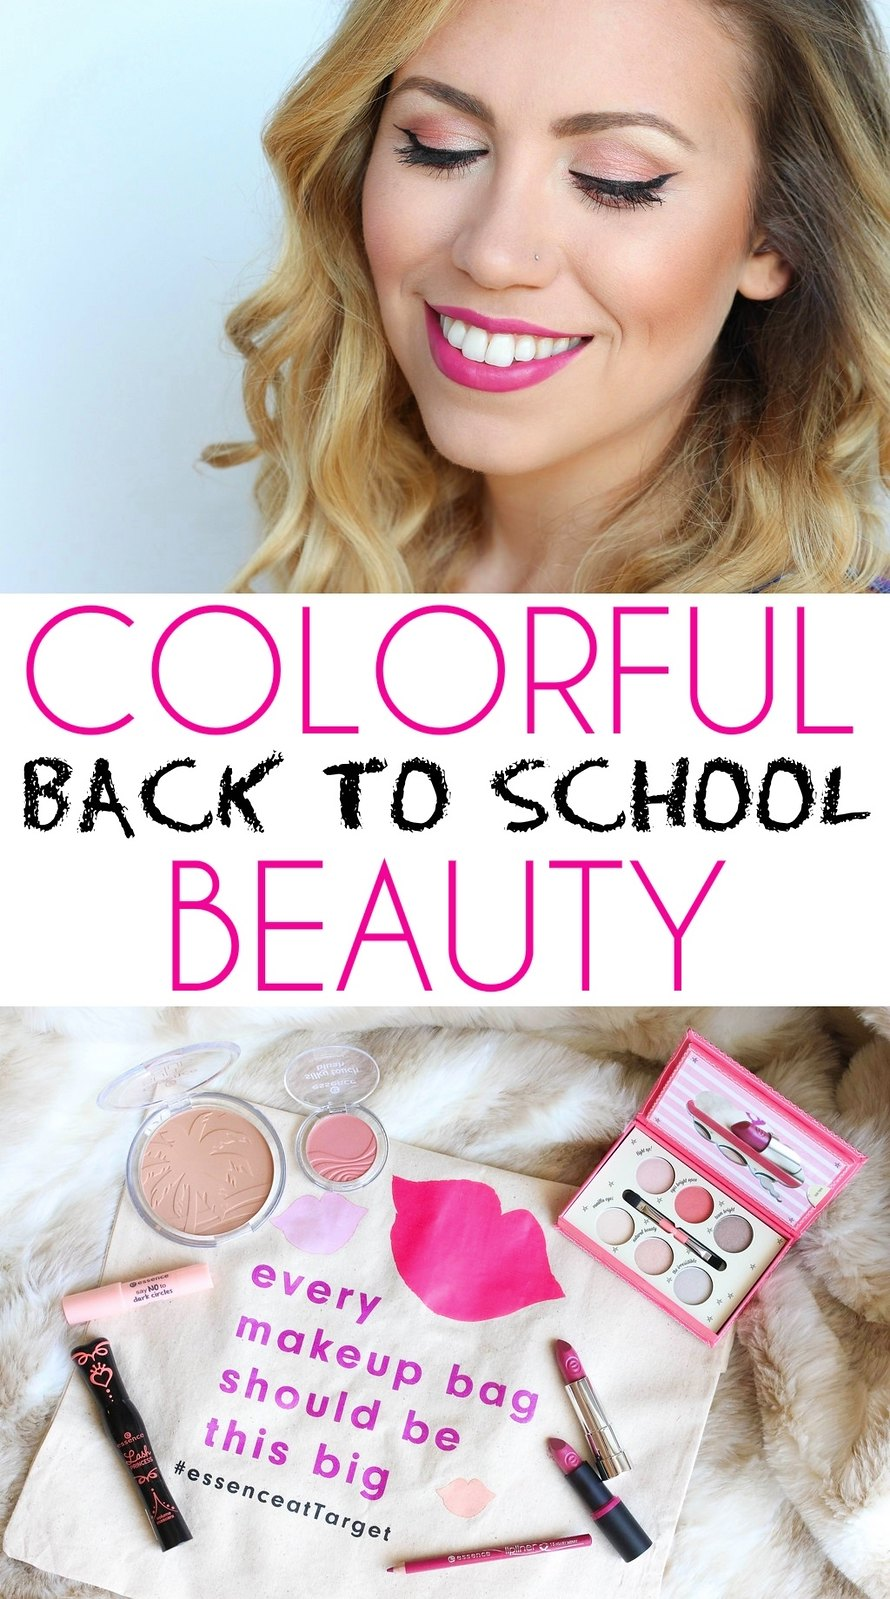 Colorful Summer Makeup with essence cosmetics | Light Pink Eye Makeup Cat Eye | Bold Pink Lipstick | Back to School Makeup at Target | Makeup Tutorial Living After Midnite Blogger Jackie Giardina